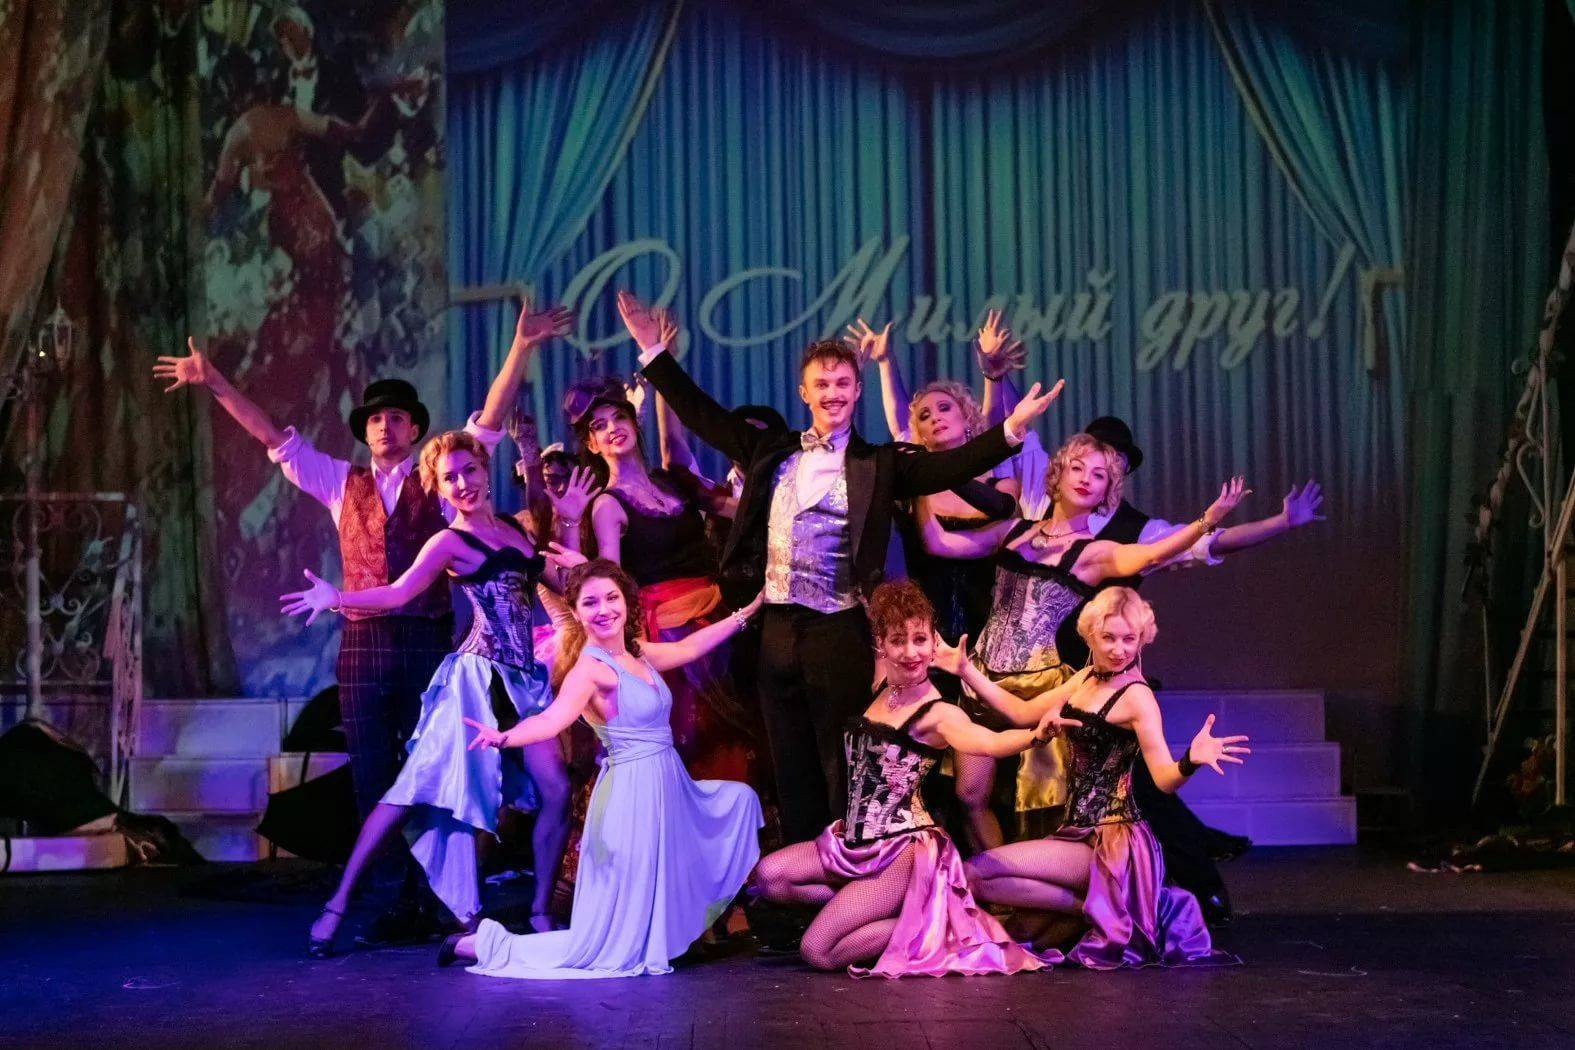 Moscow Academic Musical Theater: history, repertoire, troupe